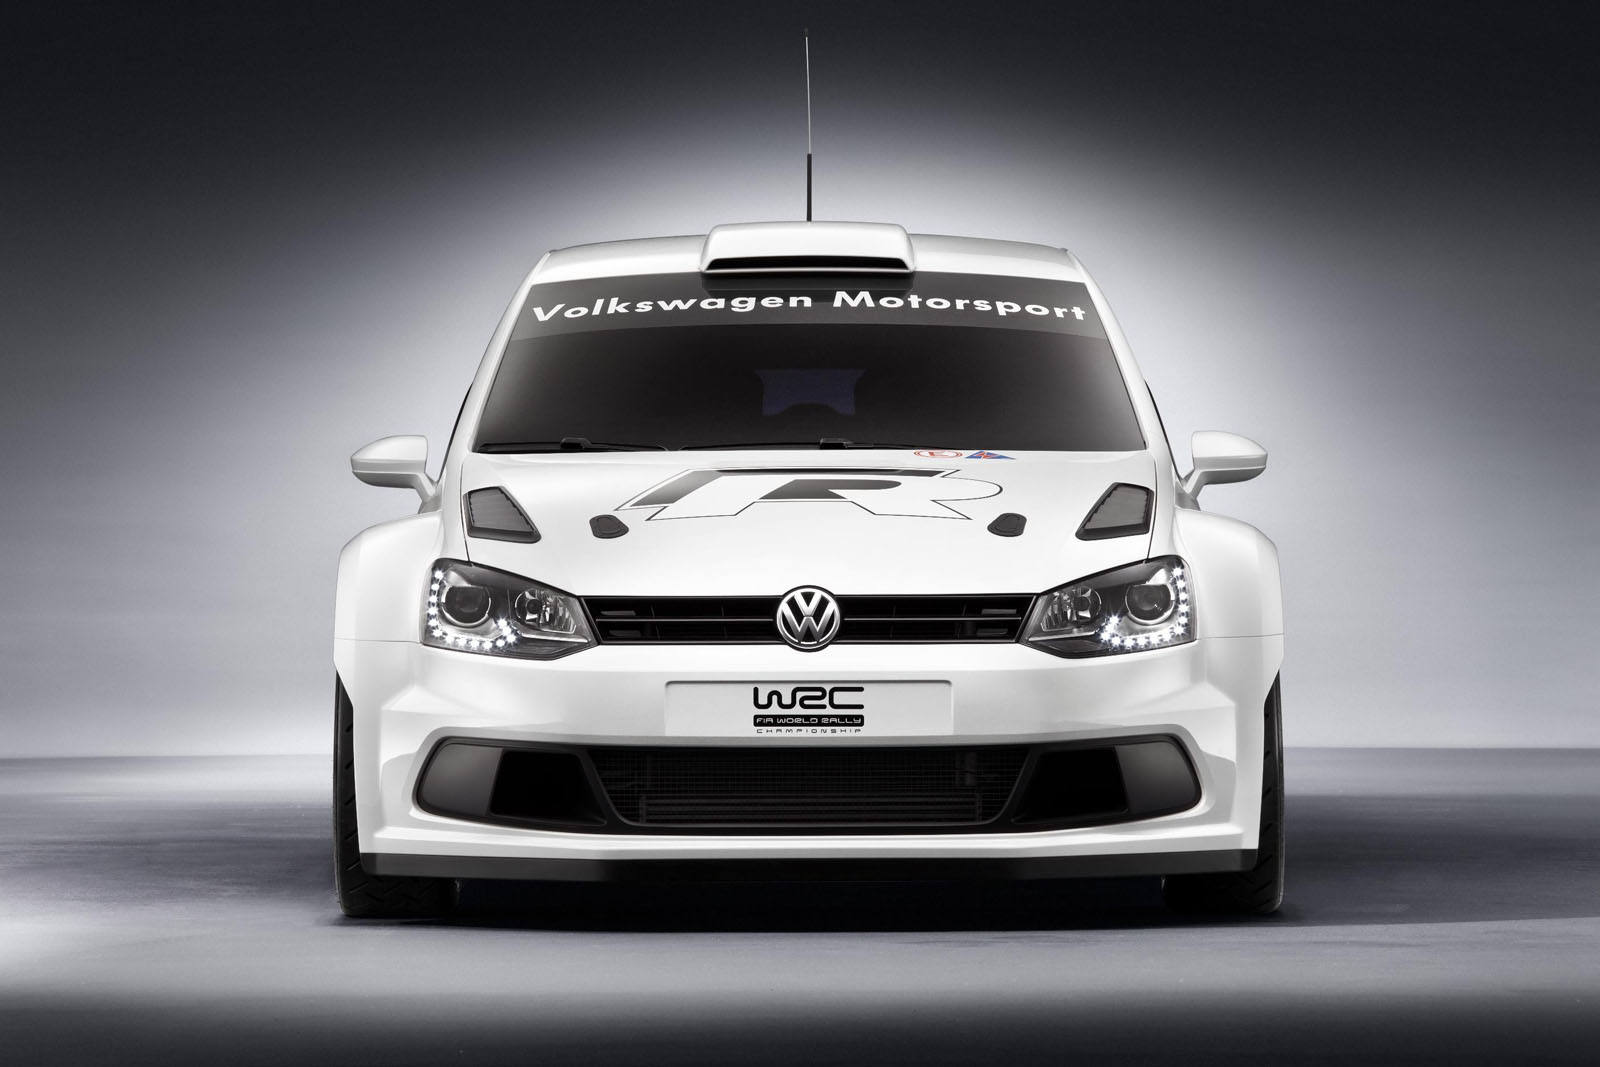 VW Polo R WRC 4 Volkswagen to hit the tracks